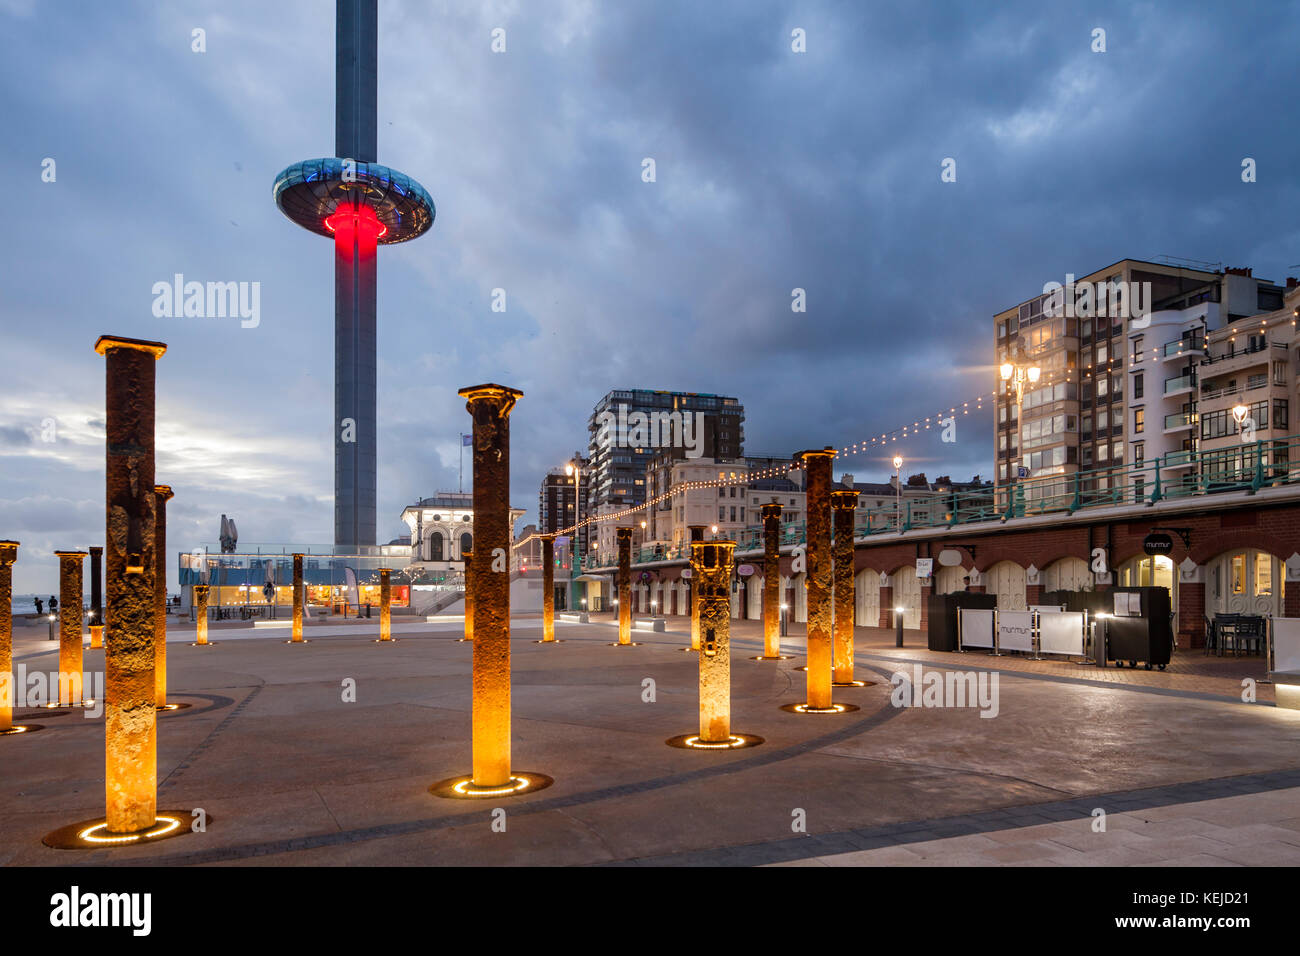 Evening on Brighton seafront, East Sussex, England. i360 tower in the distance. - Stock Image